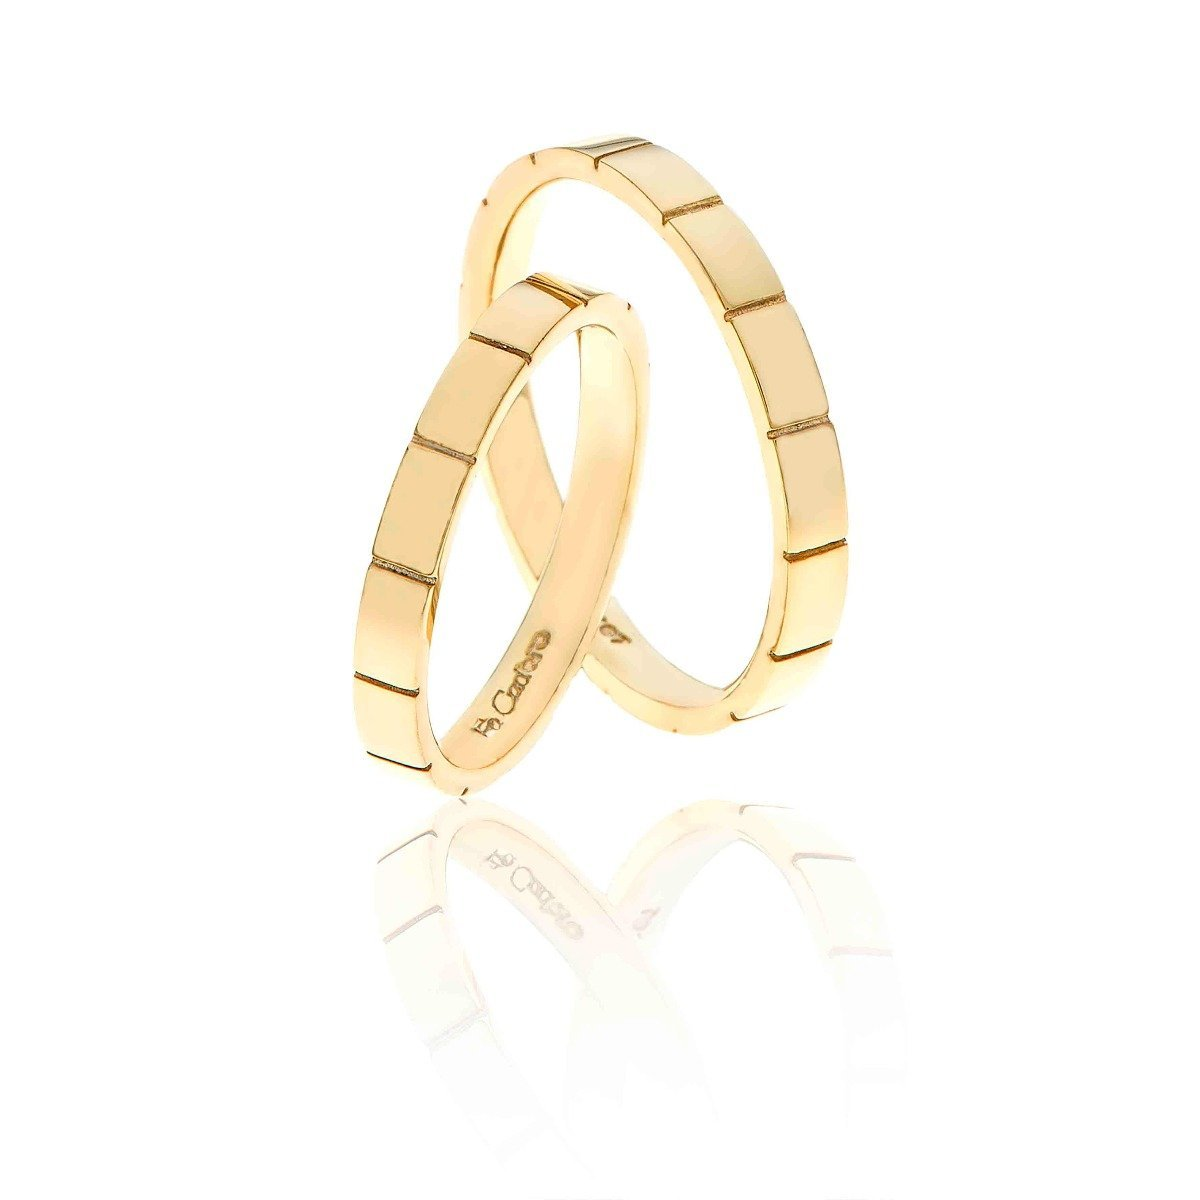 FaCad'oro WR-53 14ct Gold Wedding Ring - Goldy Jewelry Store